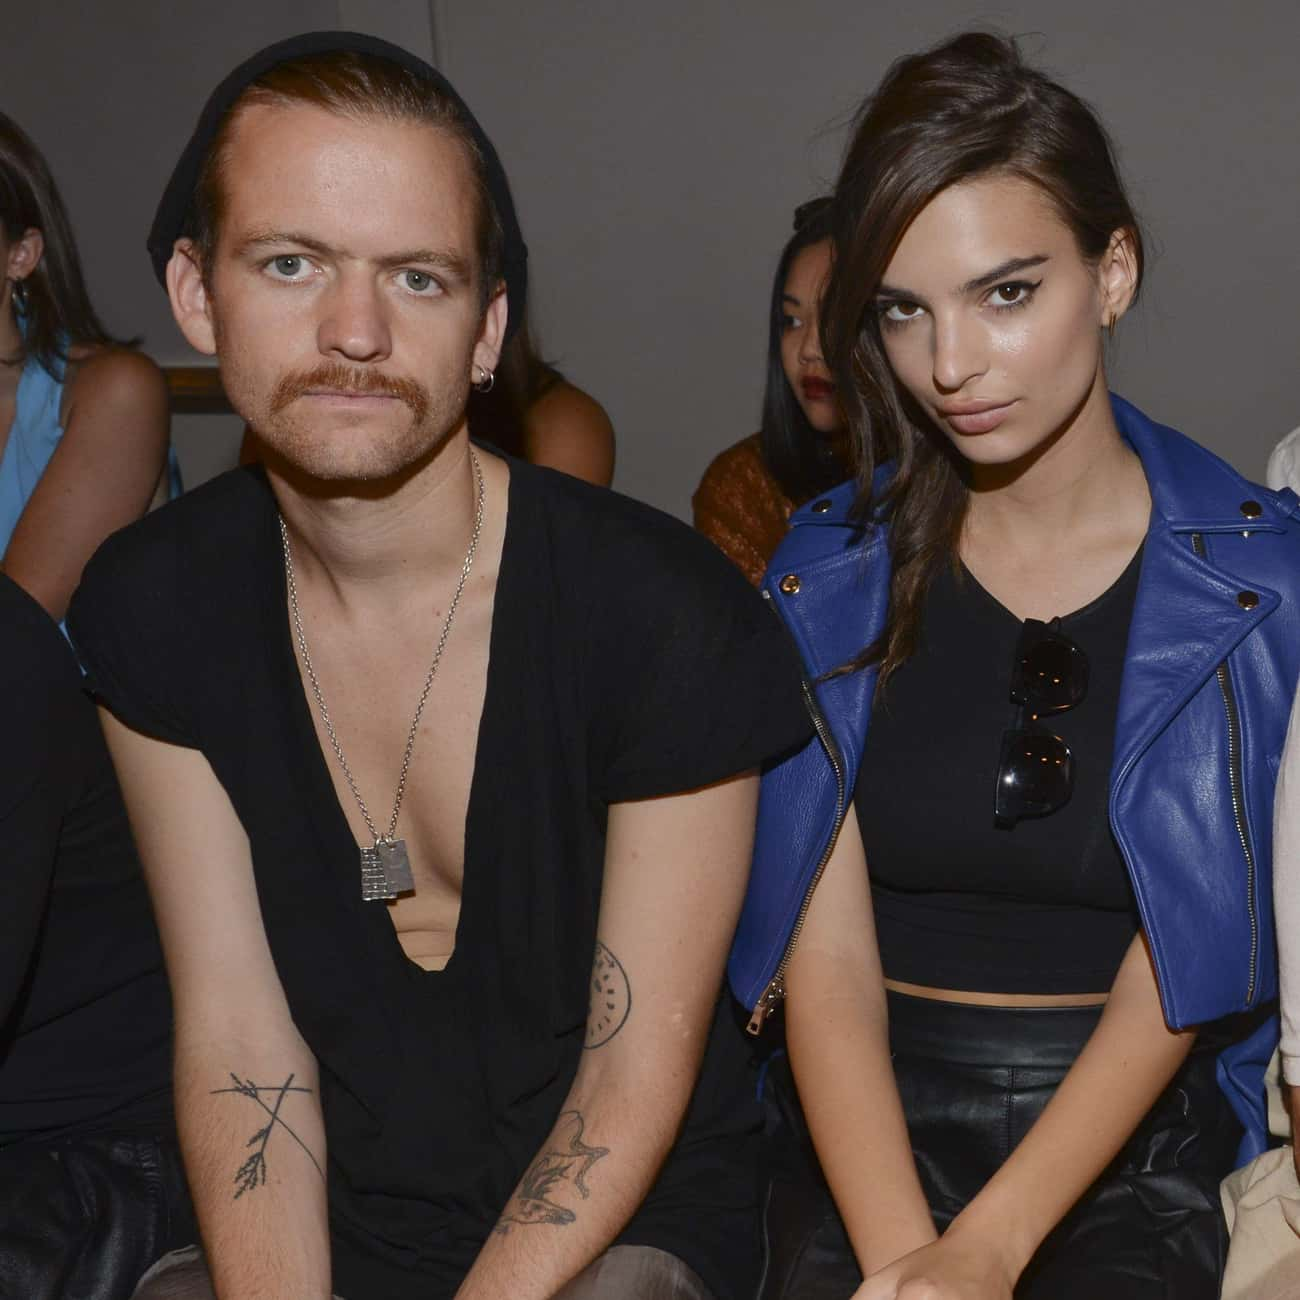 Andrew Dryden is listed (or ranked) 3 on the list Emily Ratajkowski Loves and Hookups